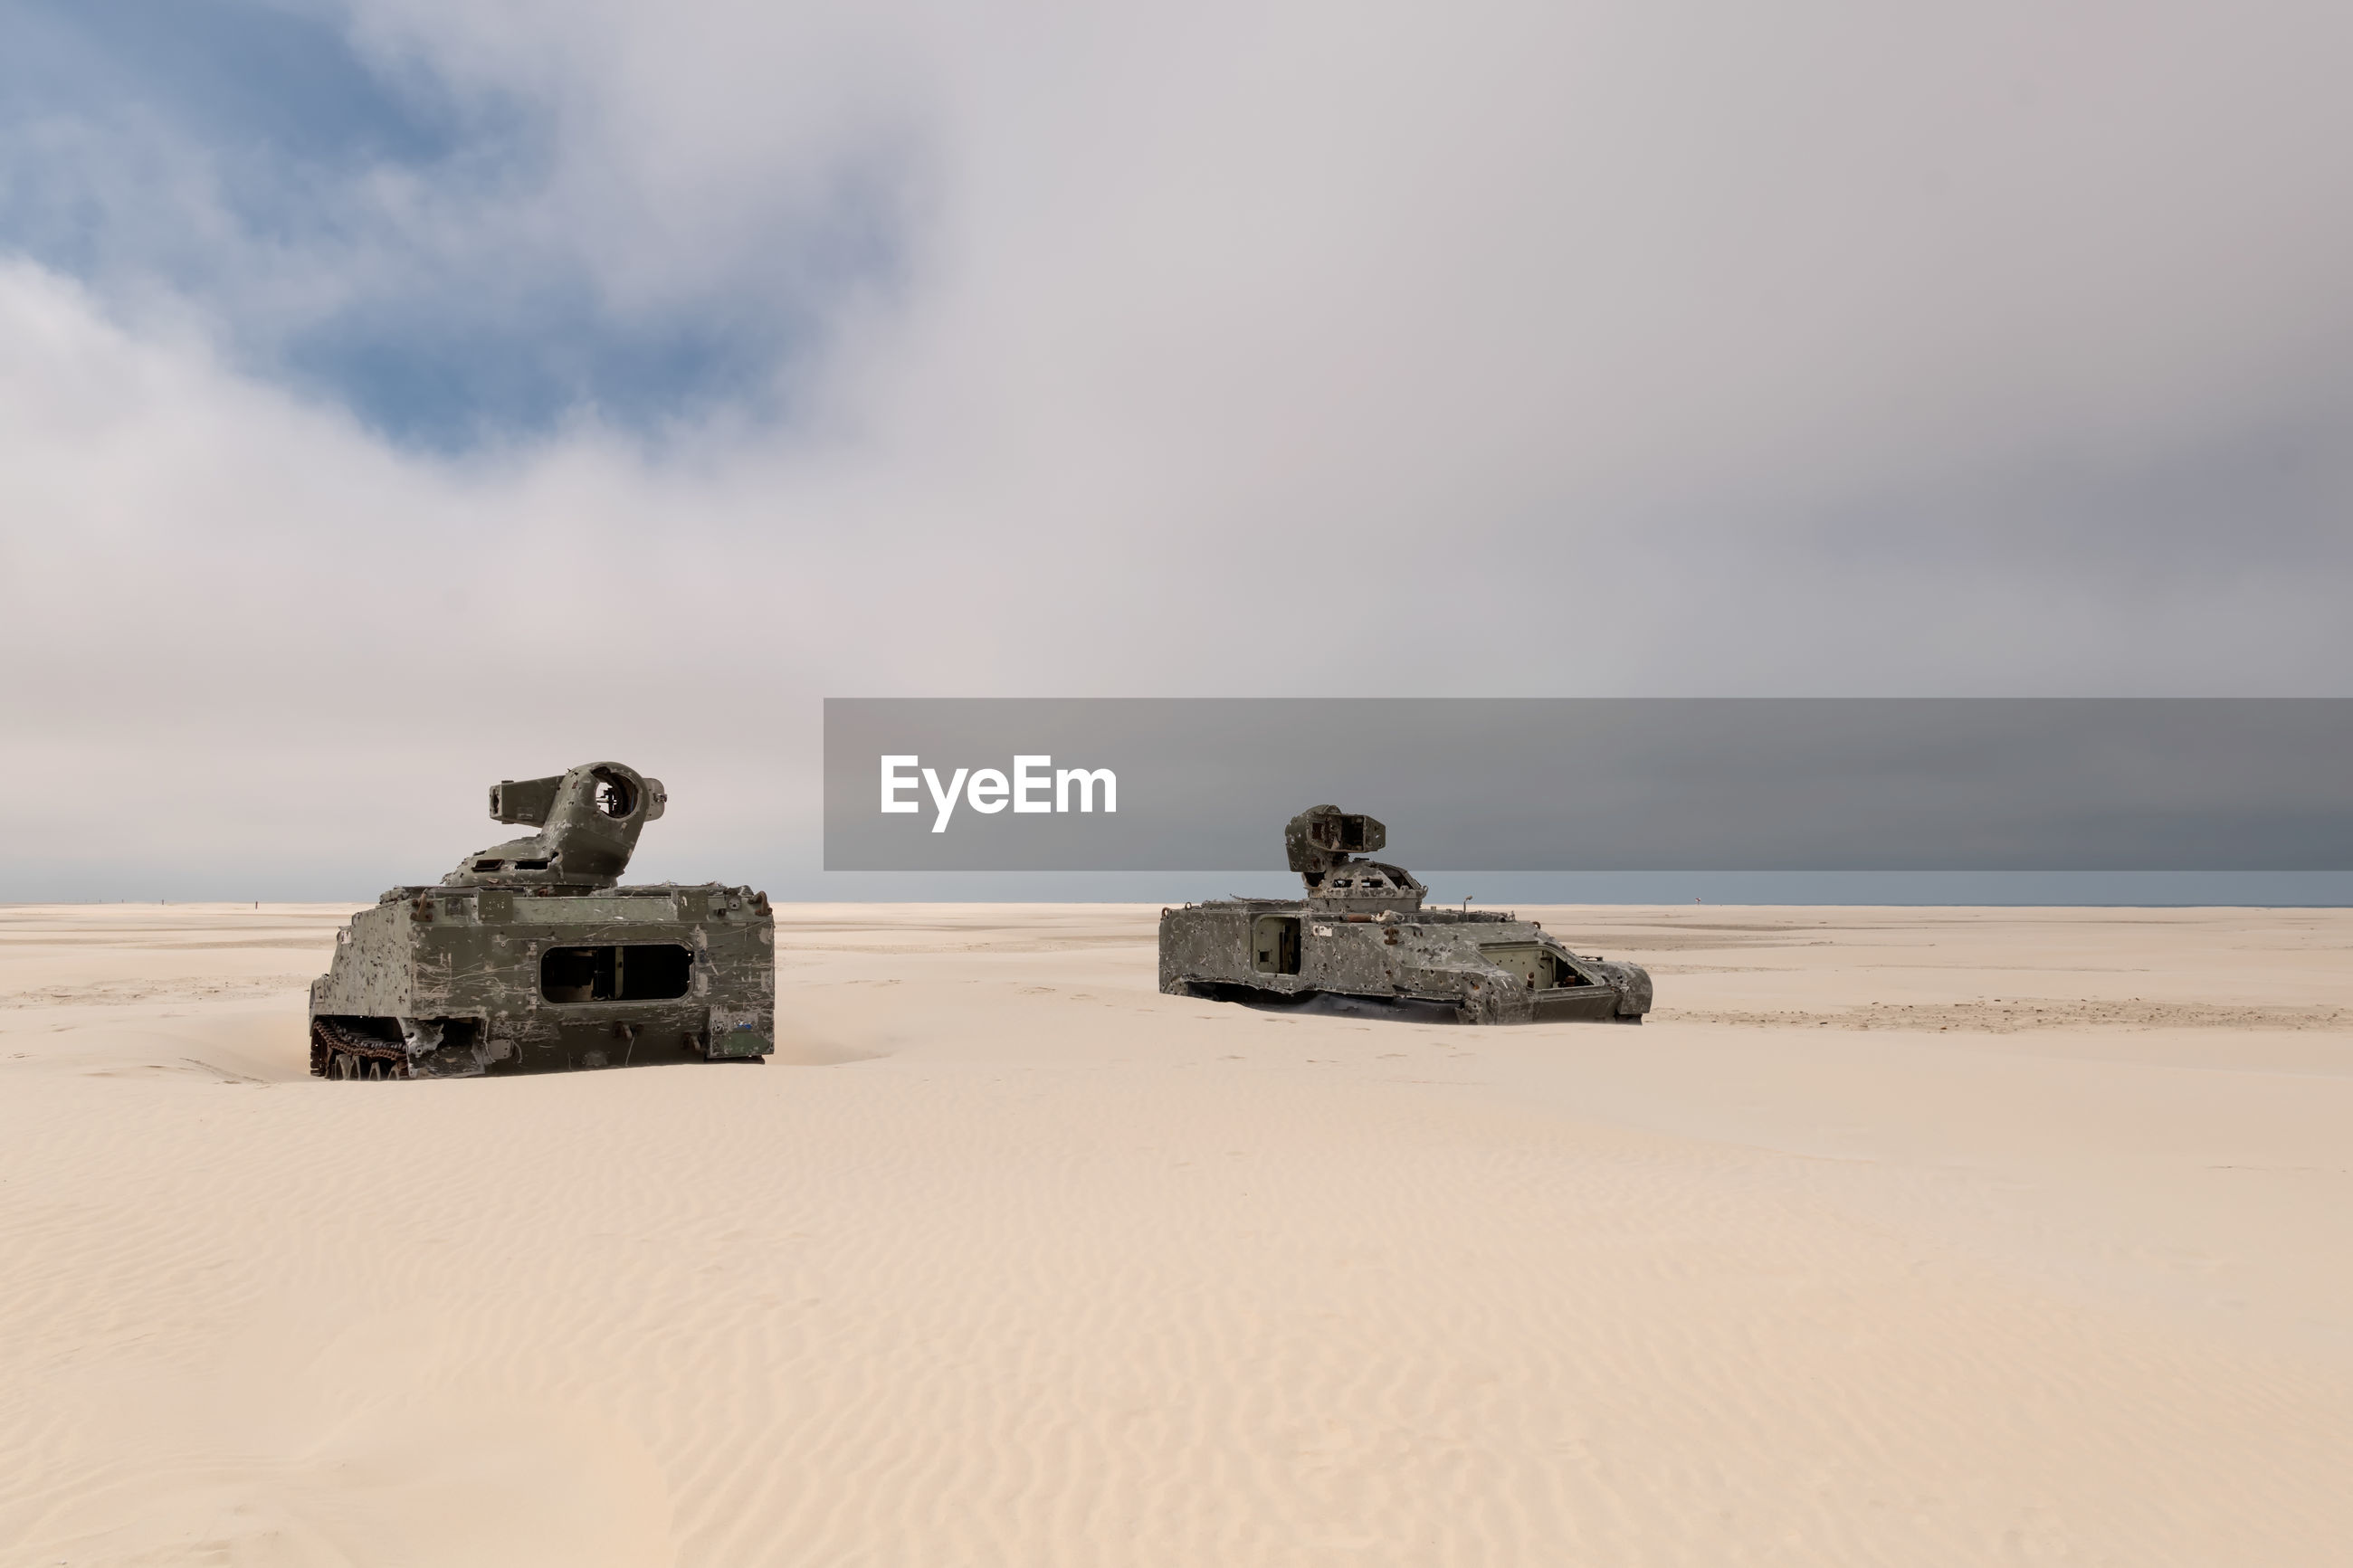 Abandoned armored tanks at desert against cloudy sky